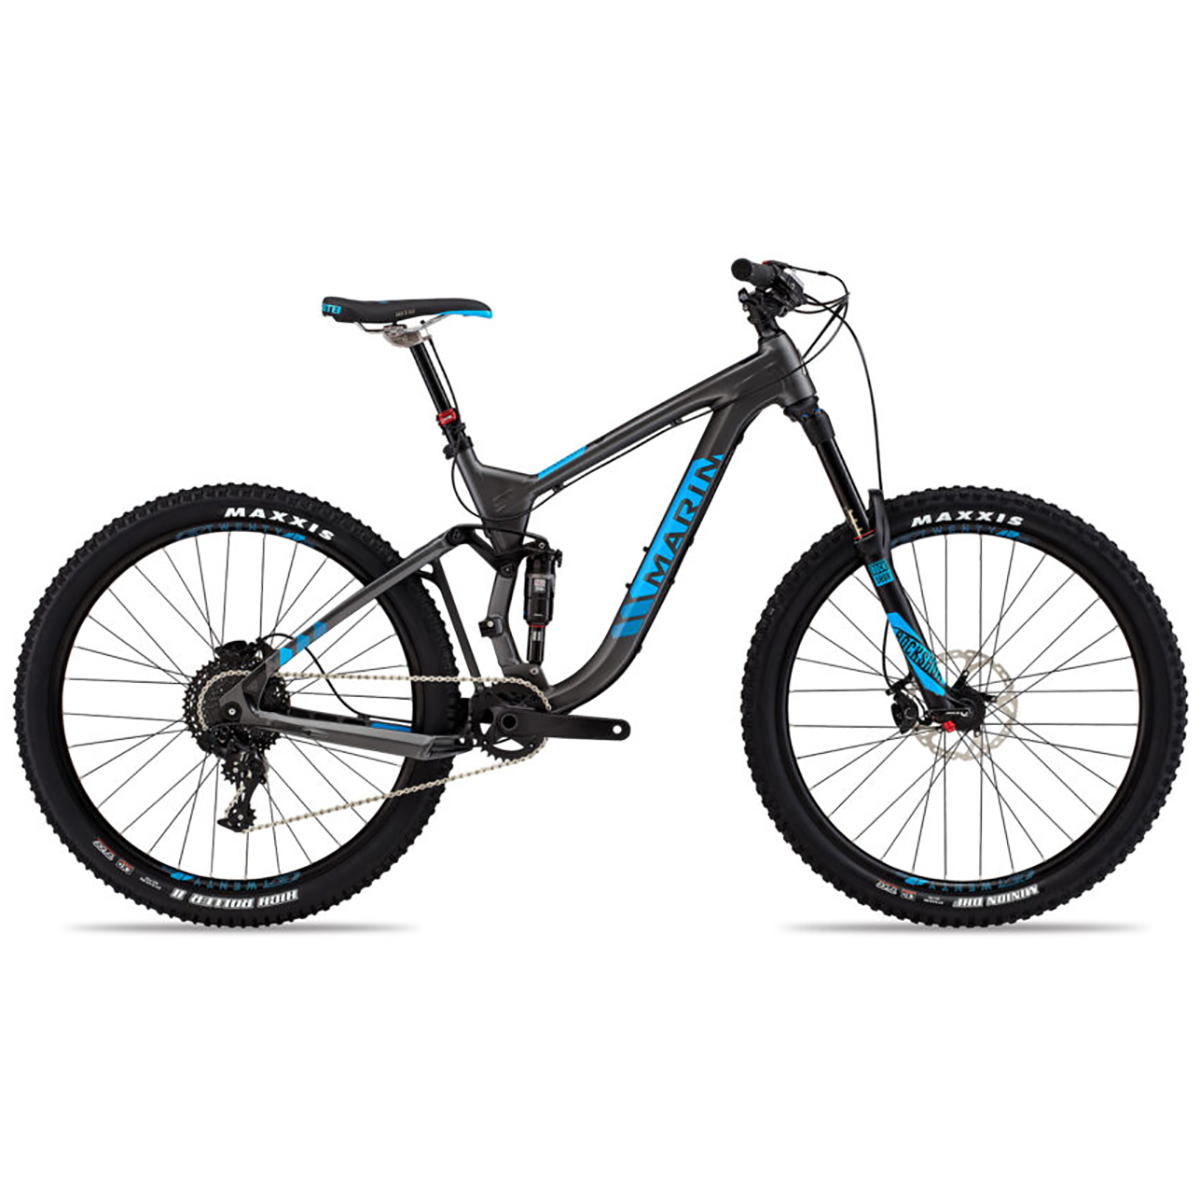 Marin Attack Trail 8 Mountain Bike - 2016